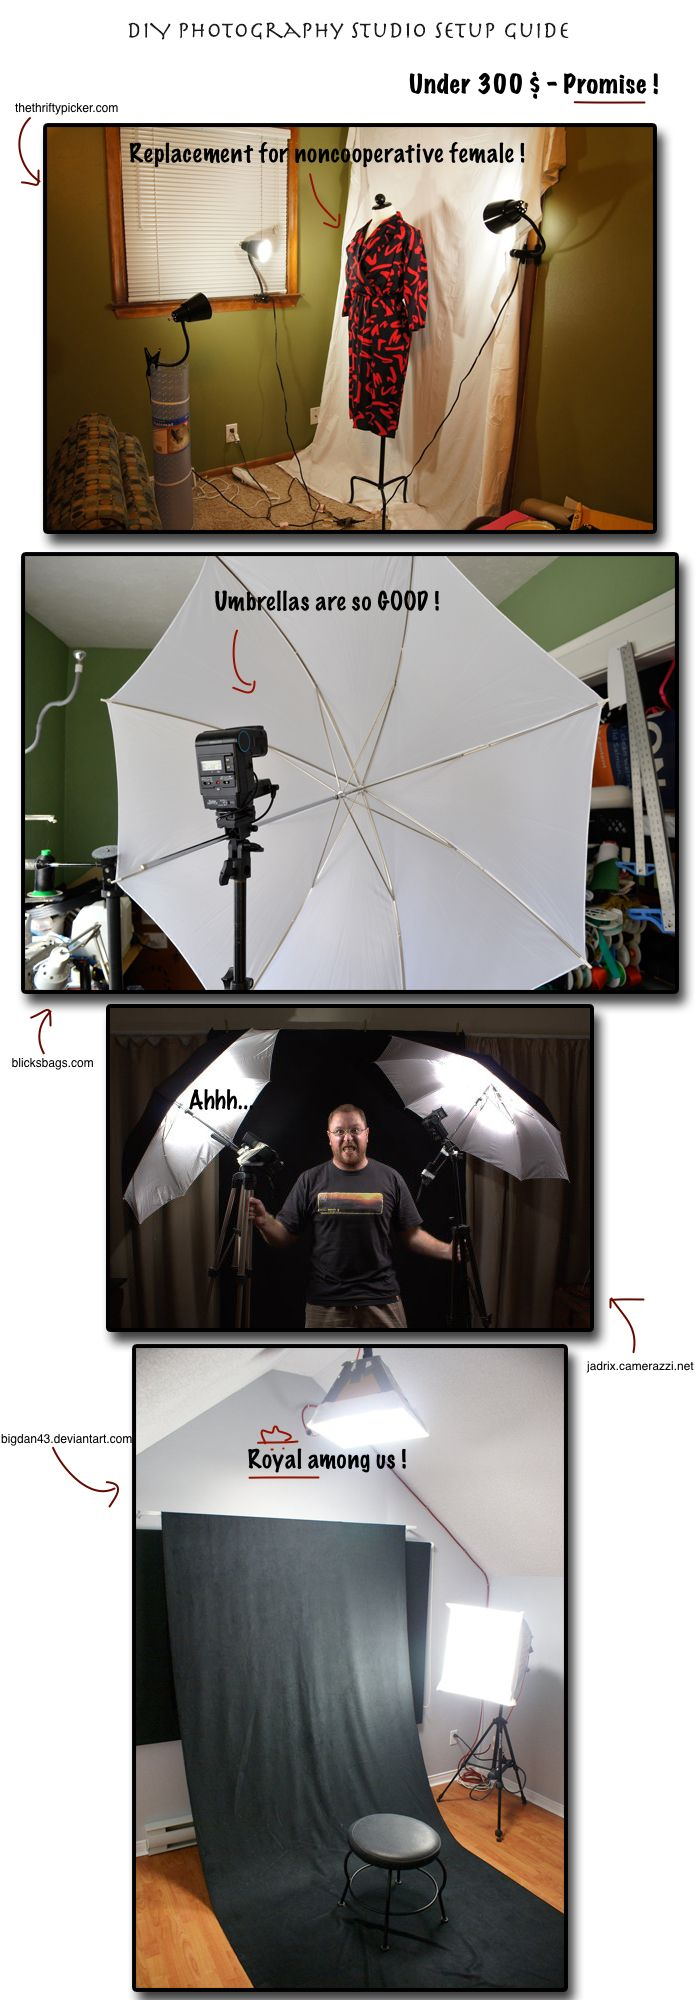 DIY Photography Studio Setup Guide